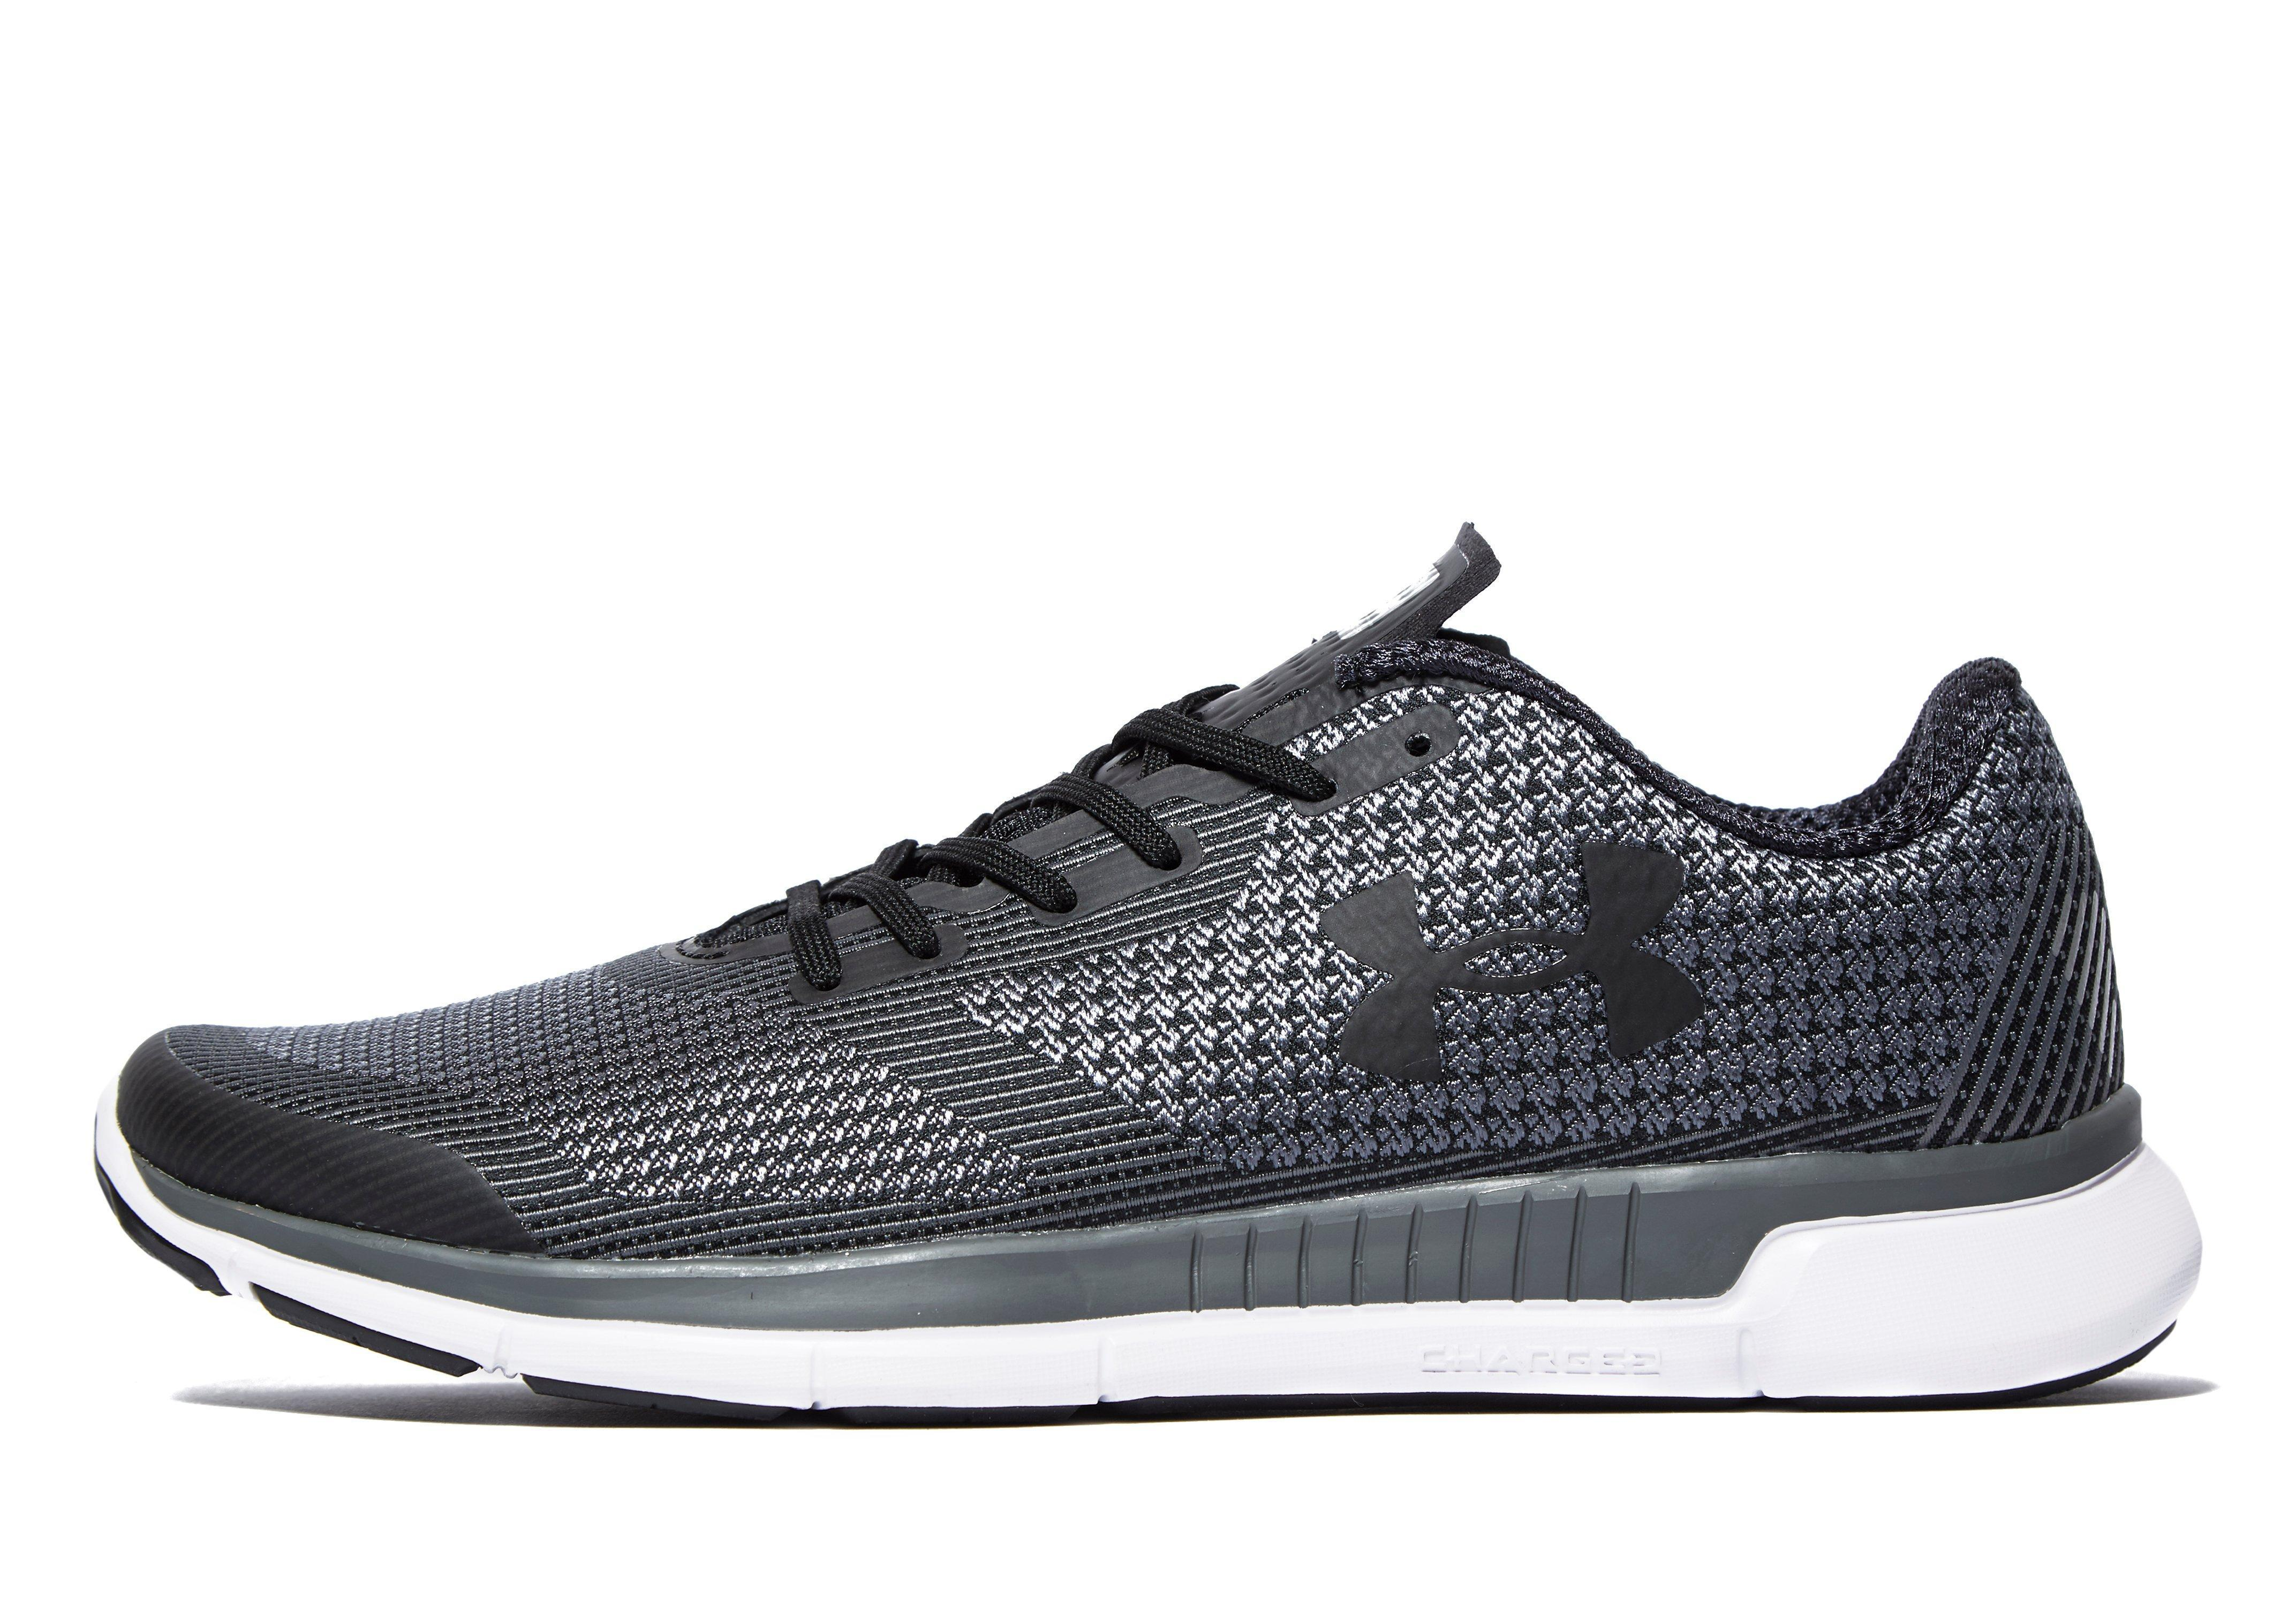 Under Armour Charged Lightning Mens Running Shoes